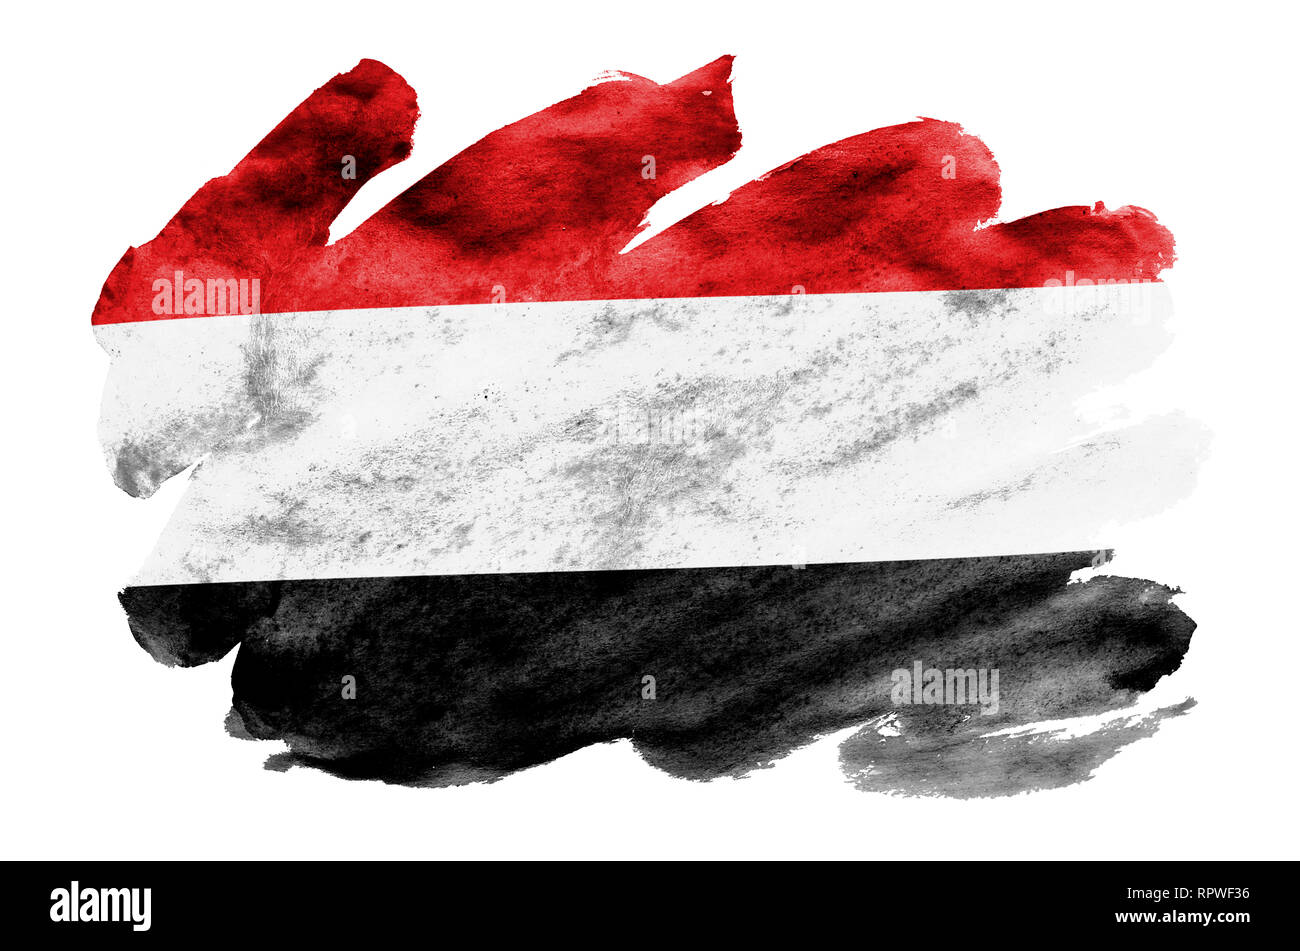 Yemen flag  is depicted in liquid watercolor style isolated on white background. Careless paint shading with image of national flag. Independence Day  - Stock Image